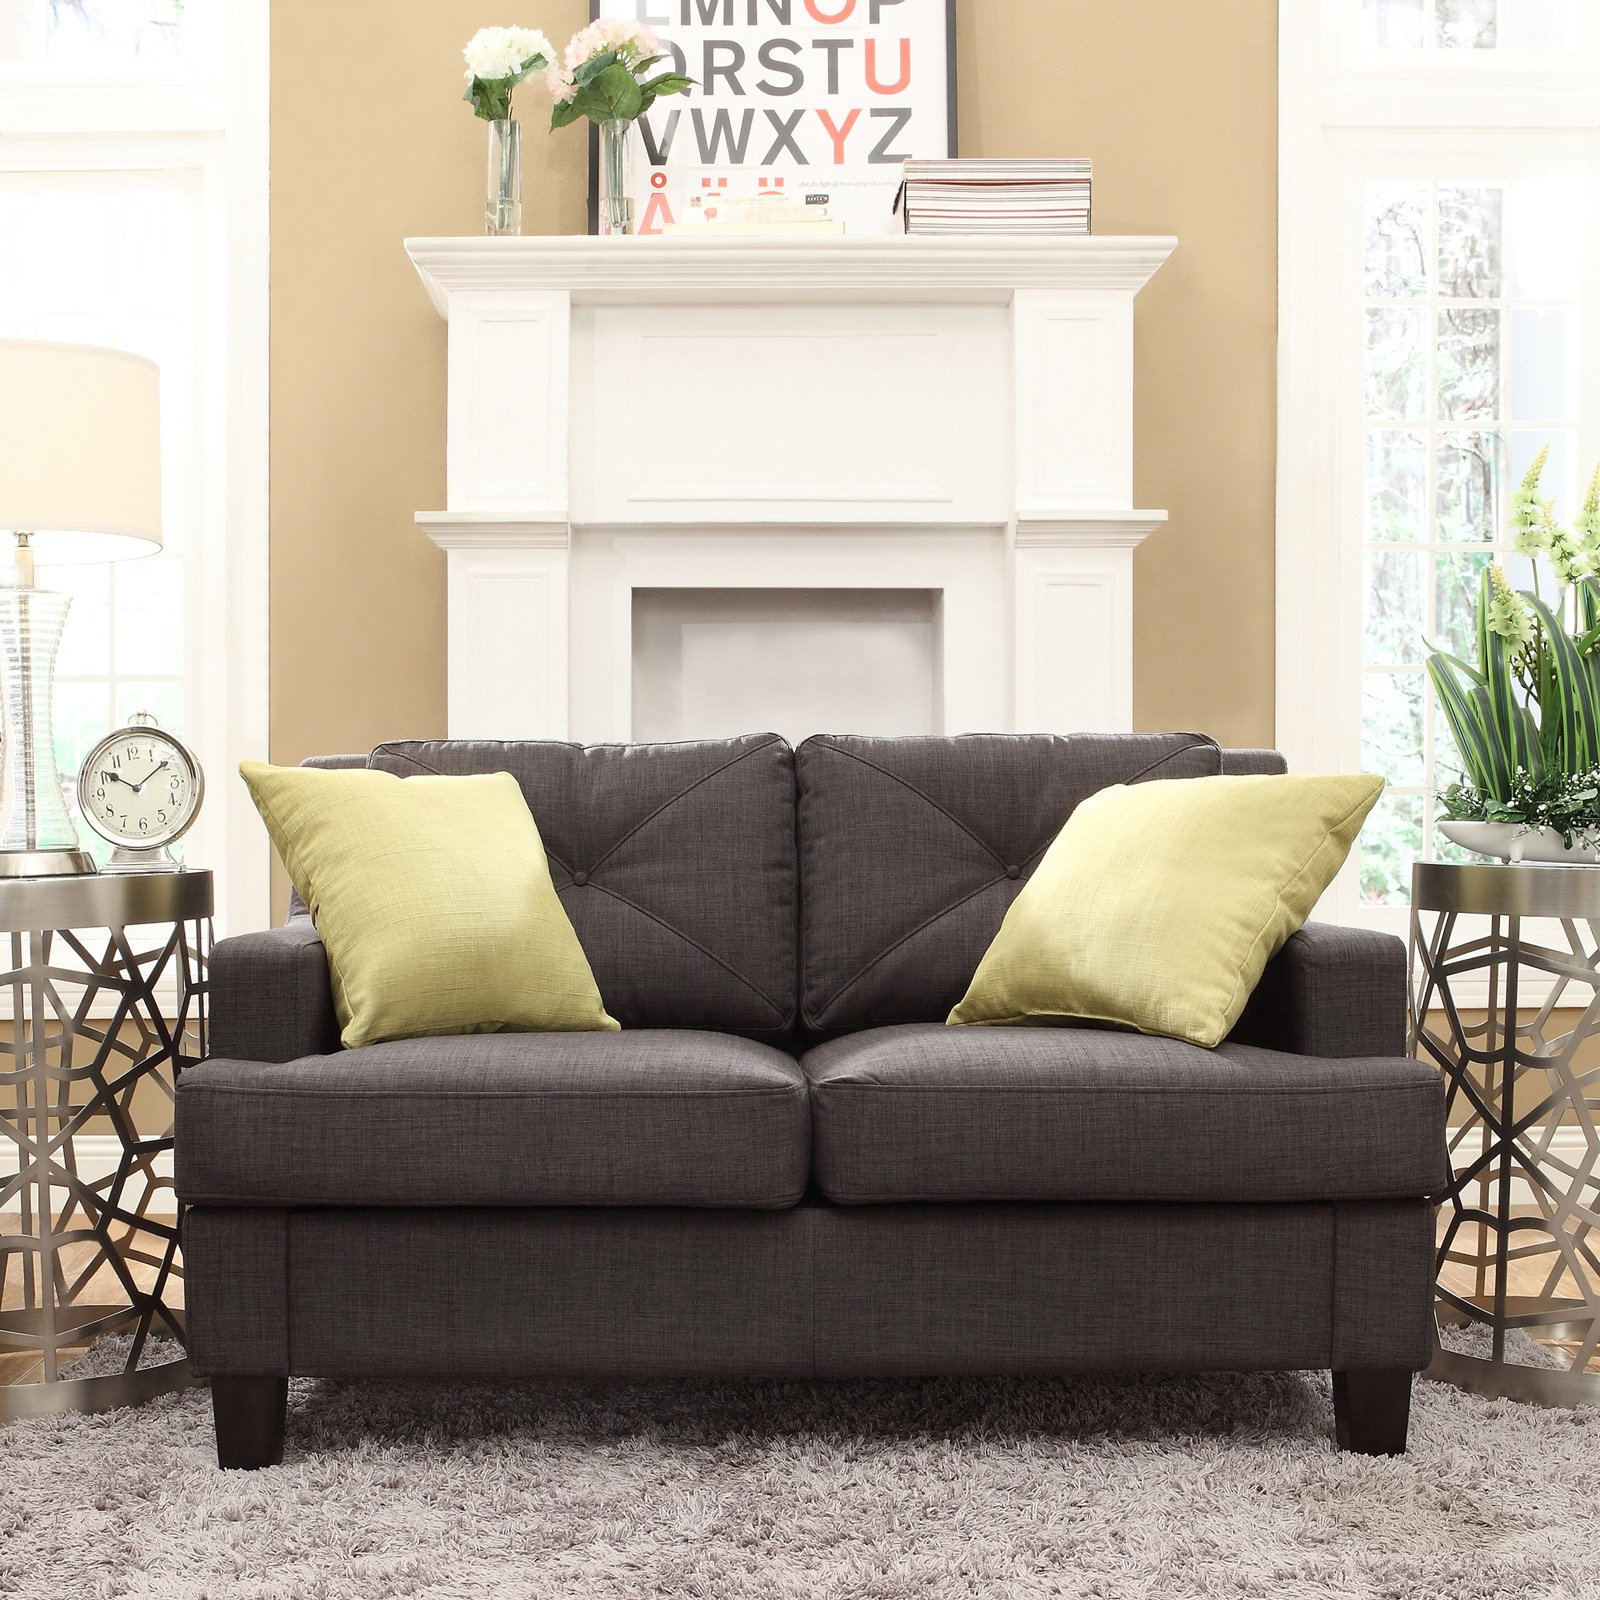 Chelsea Lane Upholstered Tufted Loveseat - Dark Gray